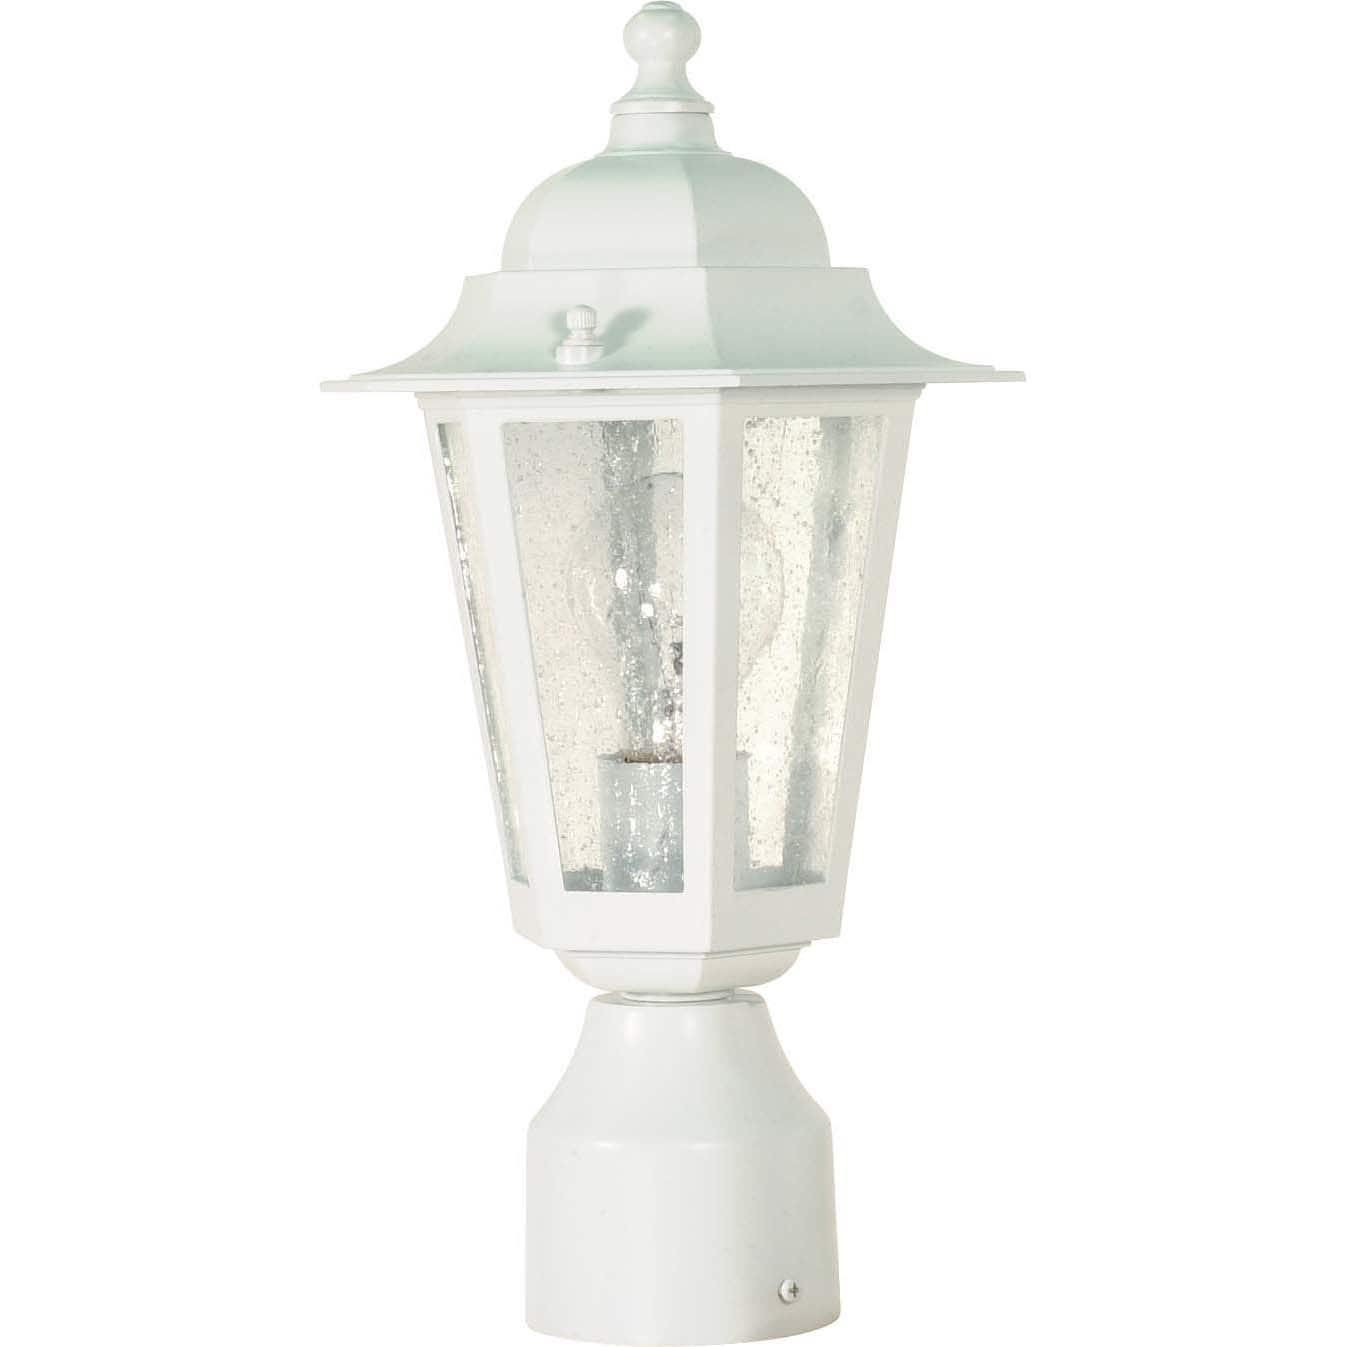 Cornerstone 1 Light White With Clear Seed Post Lantern